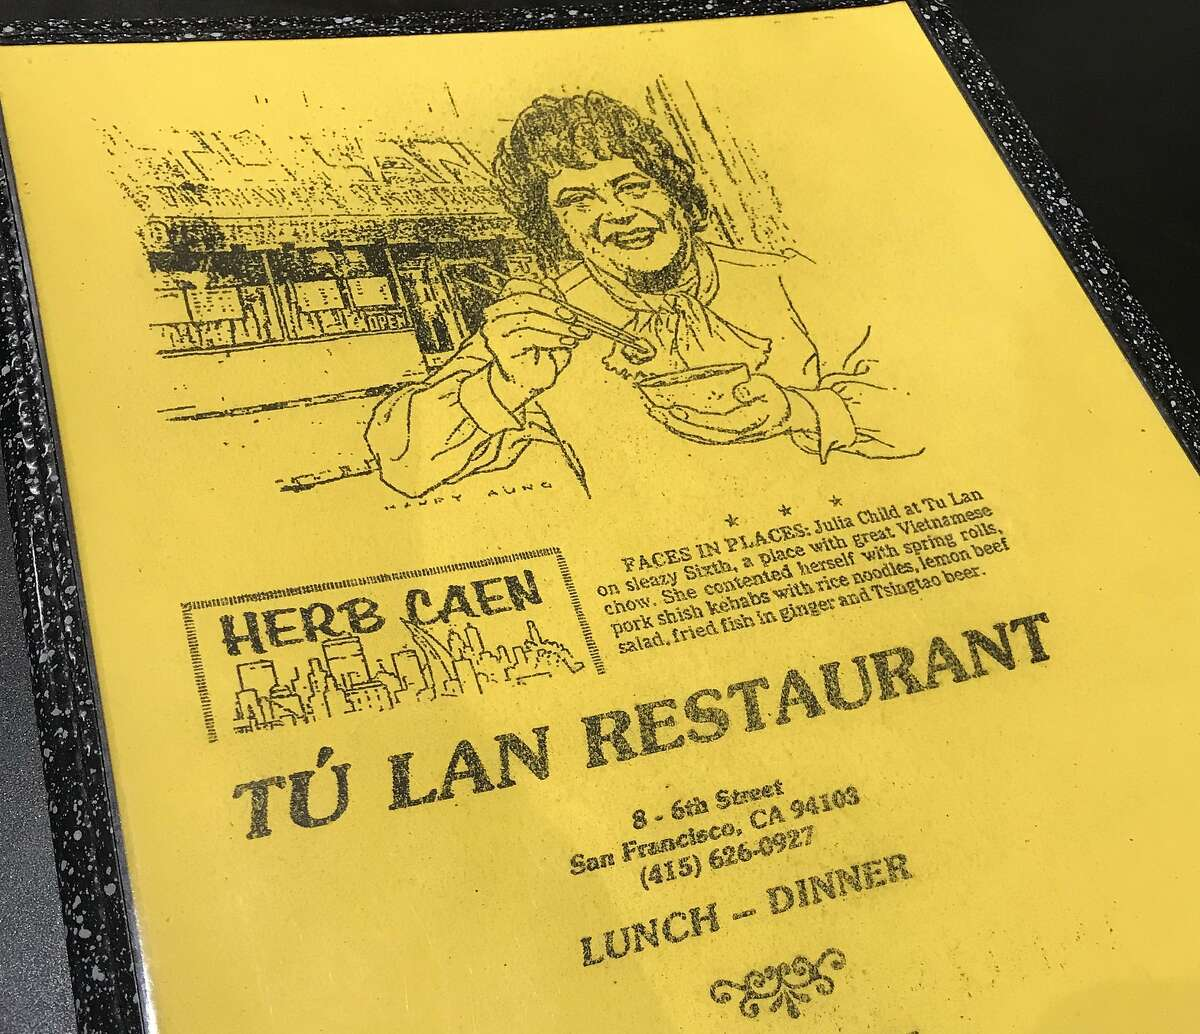 The menu of Vietnamese restaurant Tu Lan, with an undated Herb Caen item about Julia Child's visit to the establishment on Sixth Street in San Francisco.